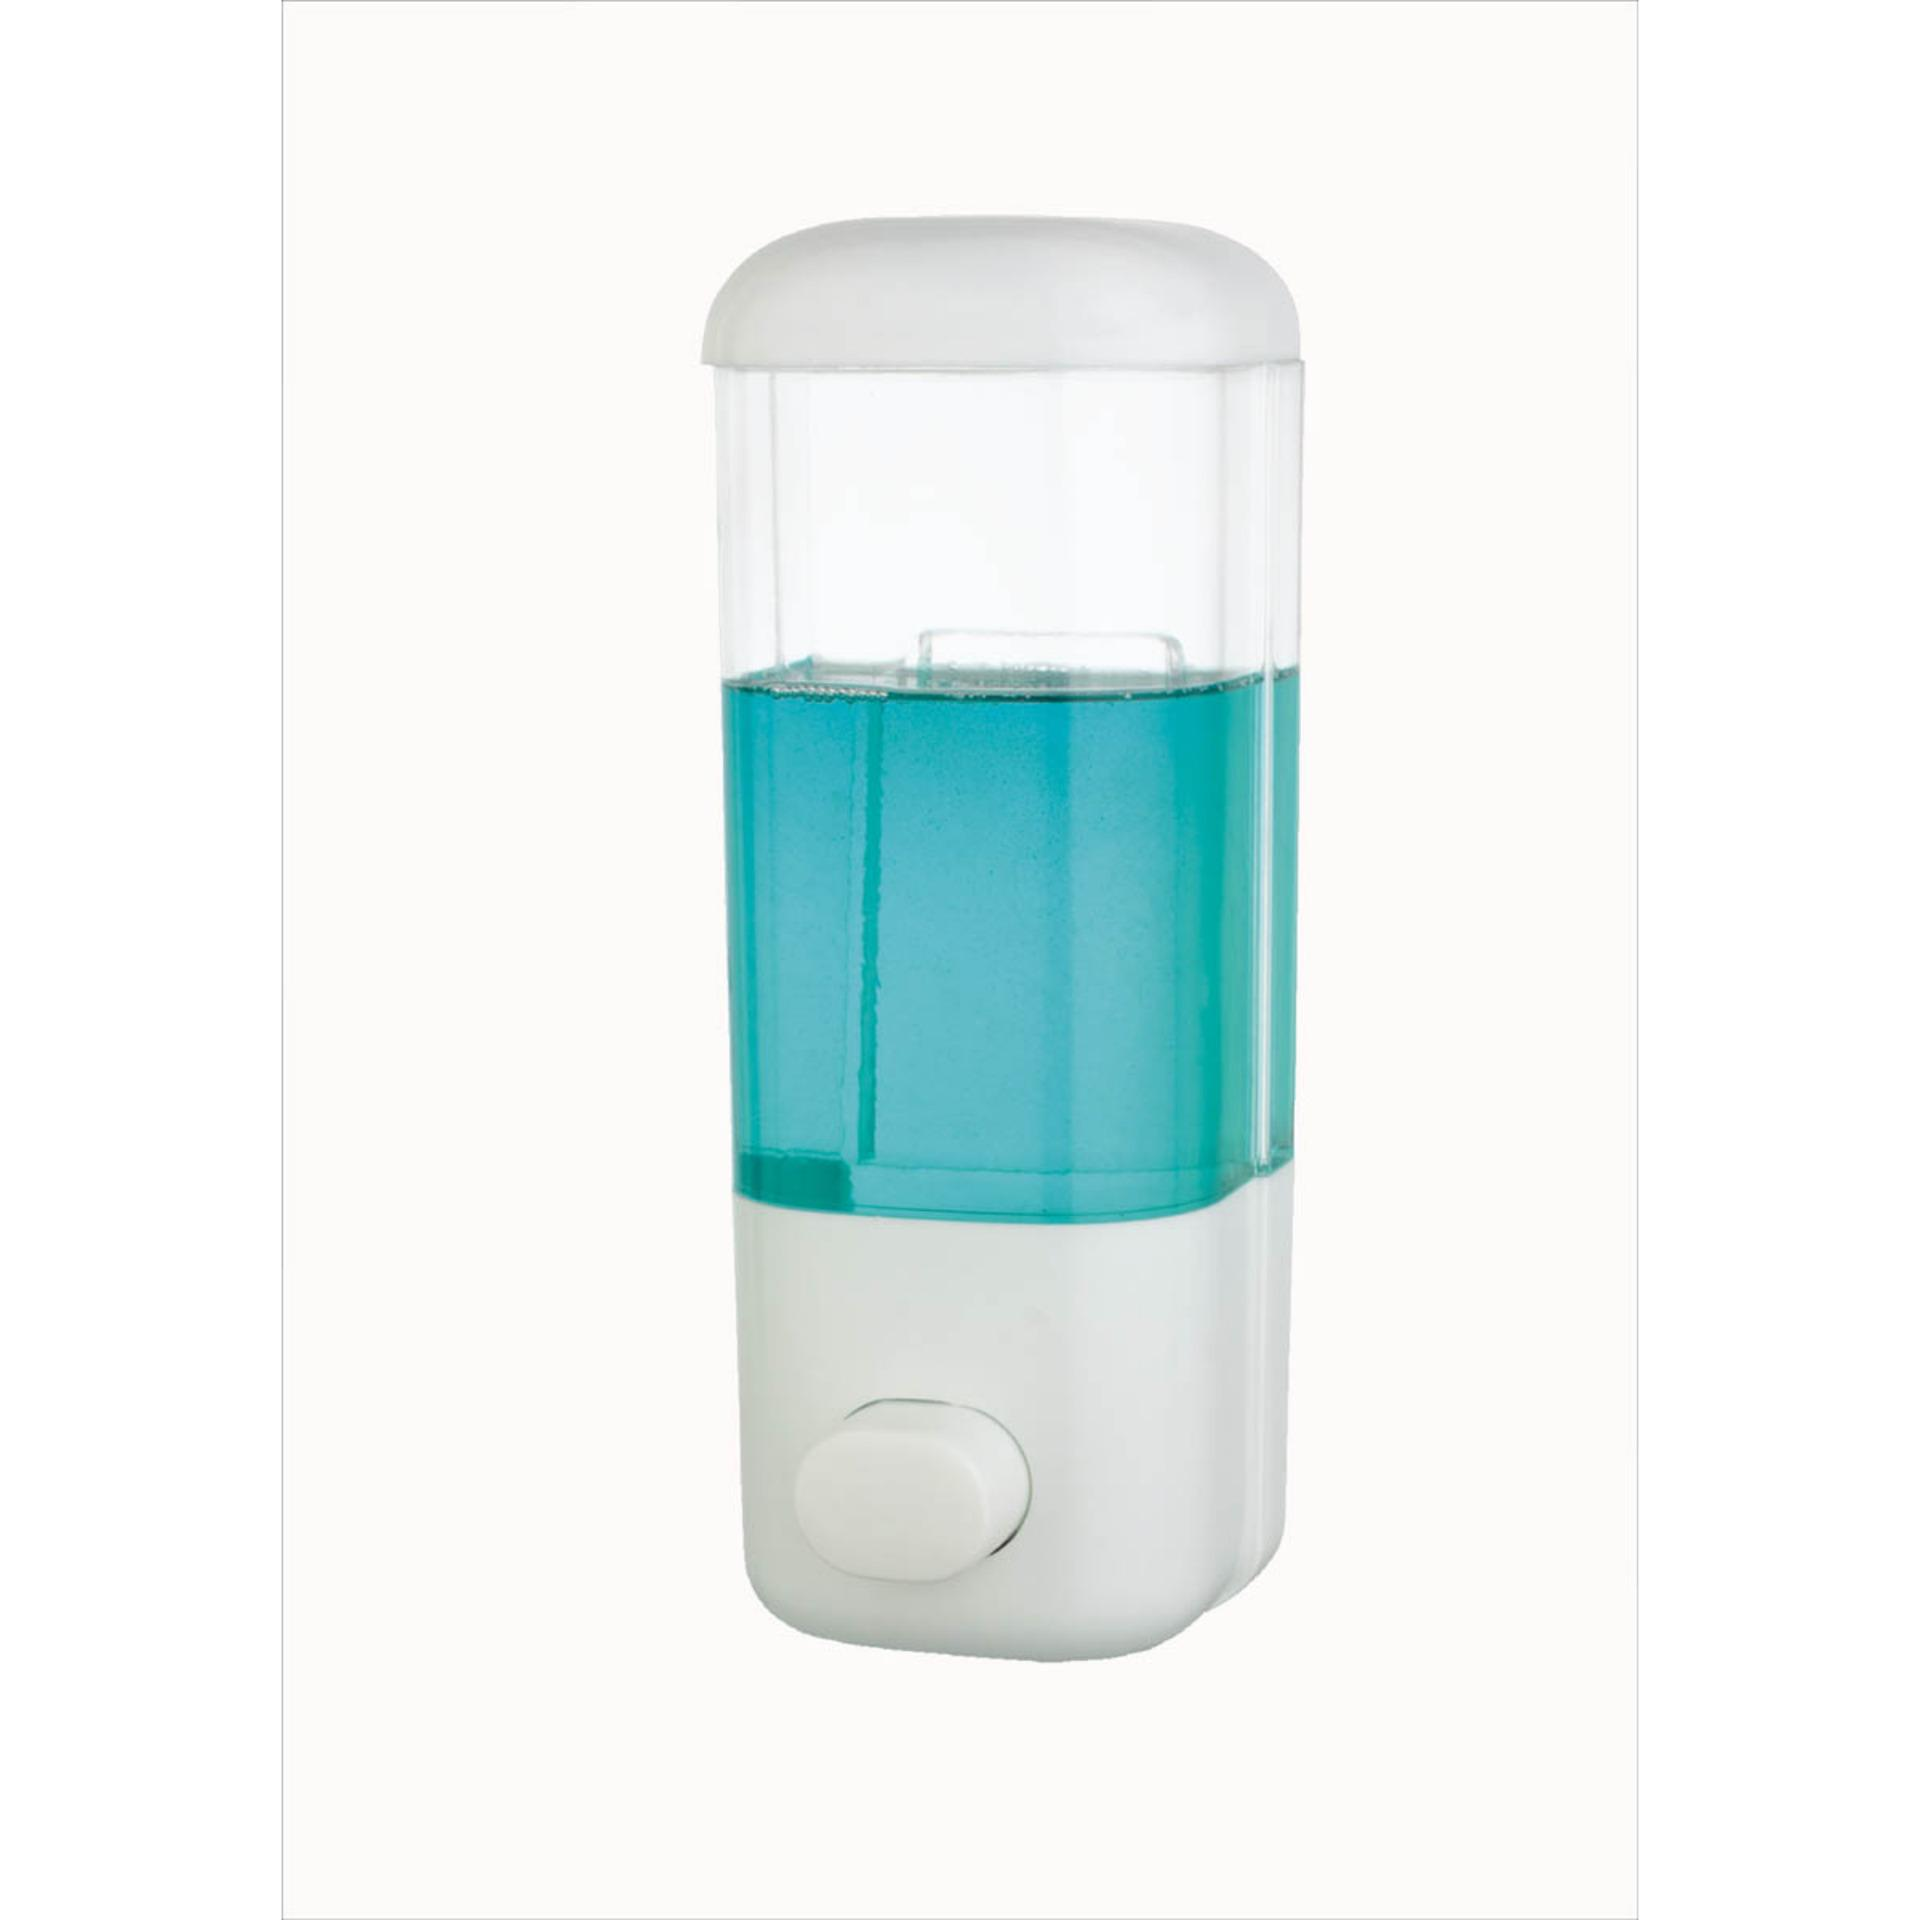 Crystal 9017 Soap Dispenser 500 mL / Tempat Sabun Cair